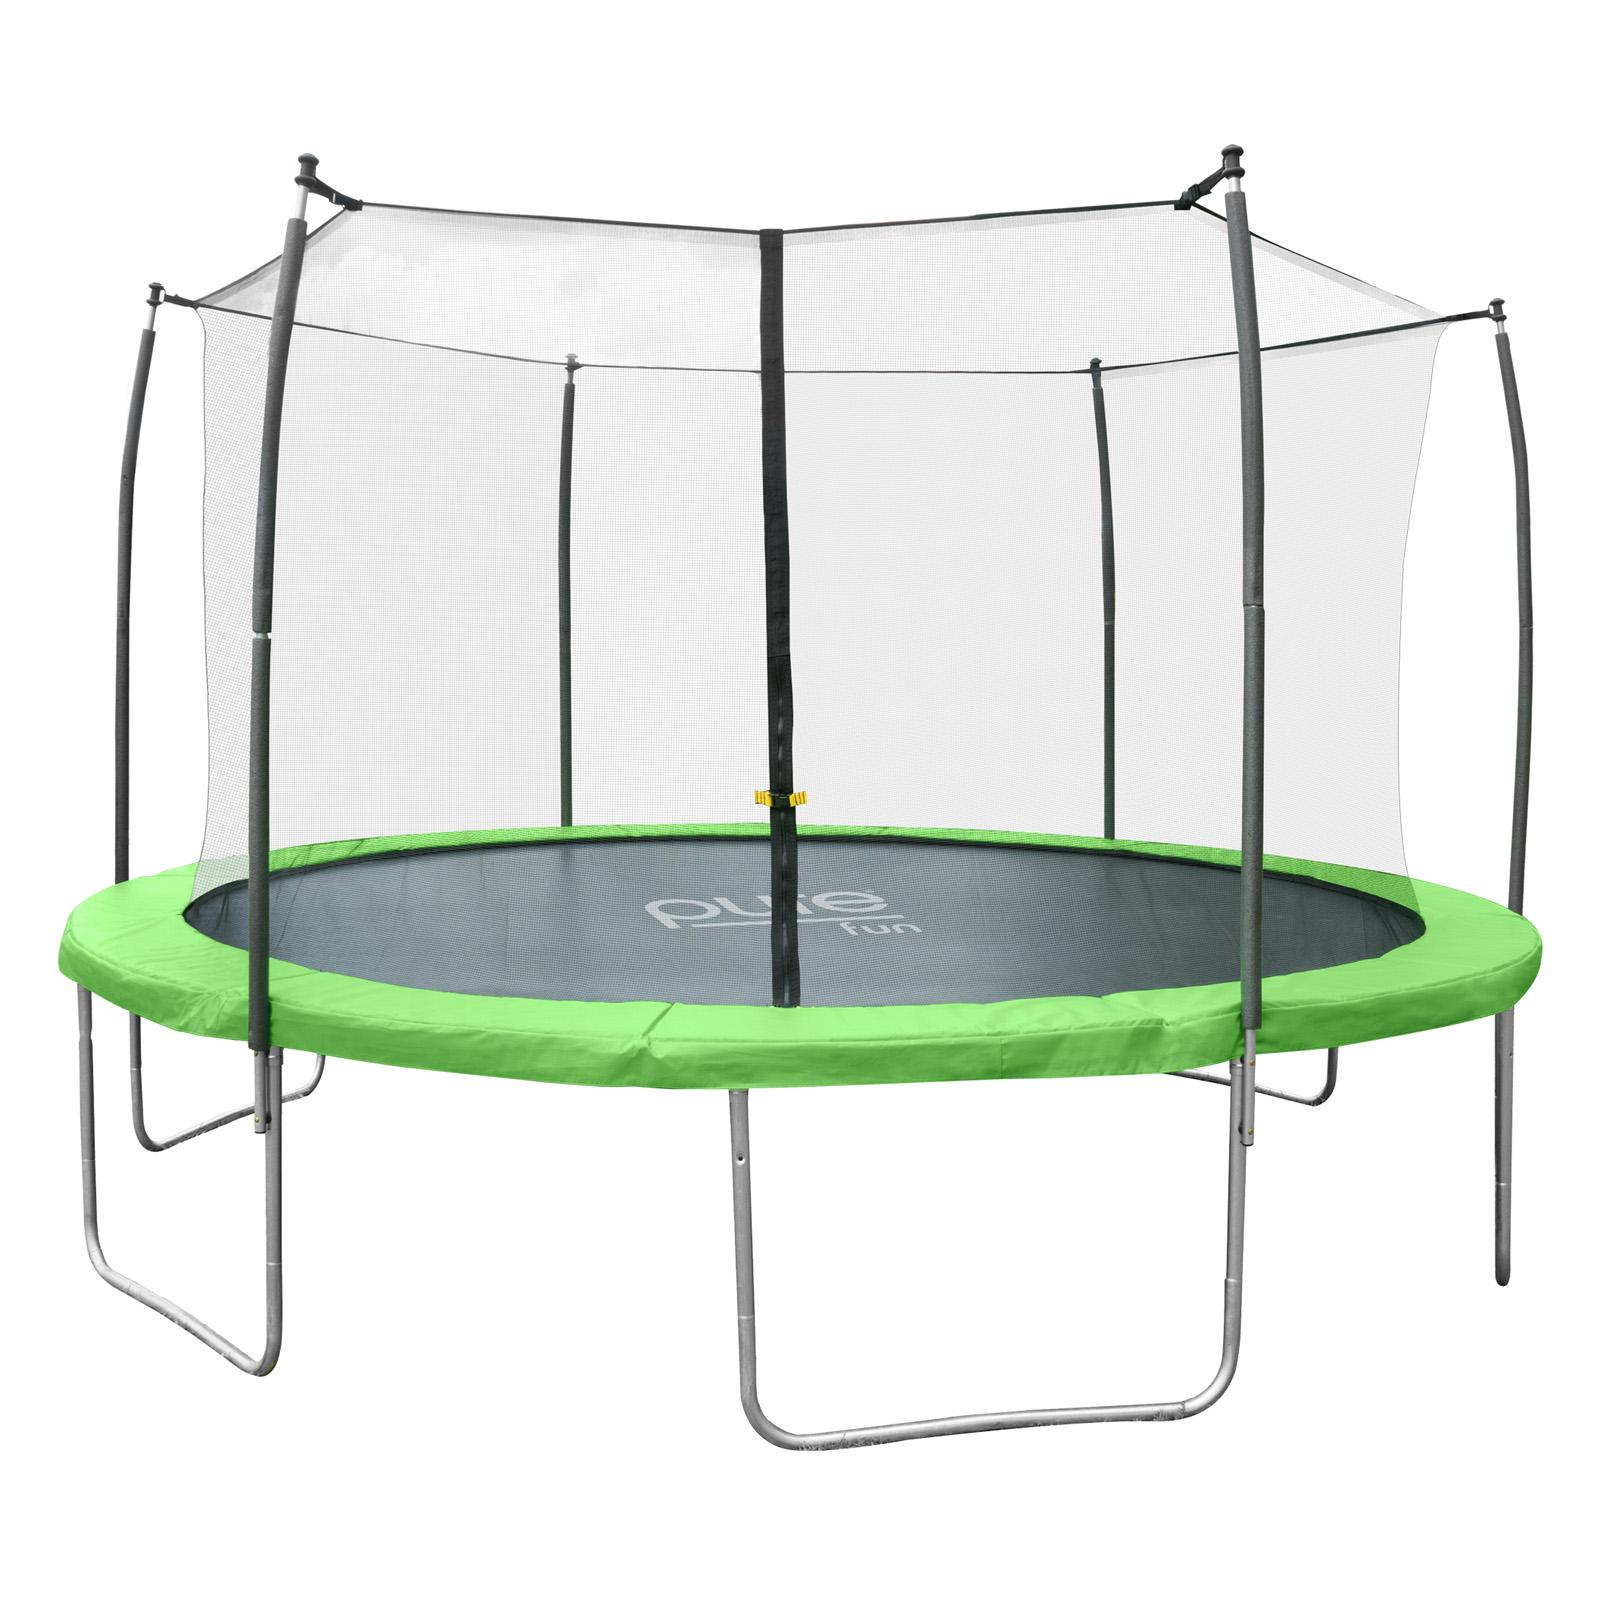 Pure Fun Dura-Bounce 15 ft. Round Trampoline with Enclosure - 9315TS